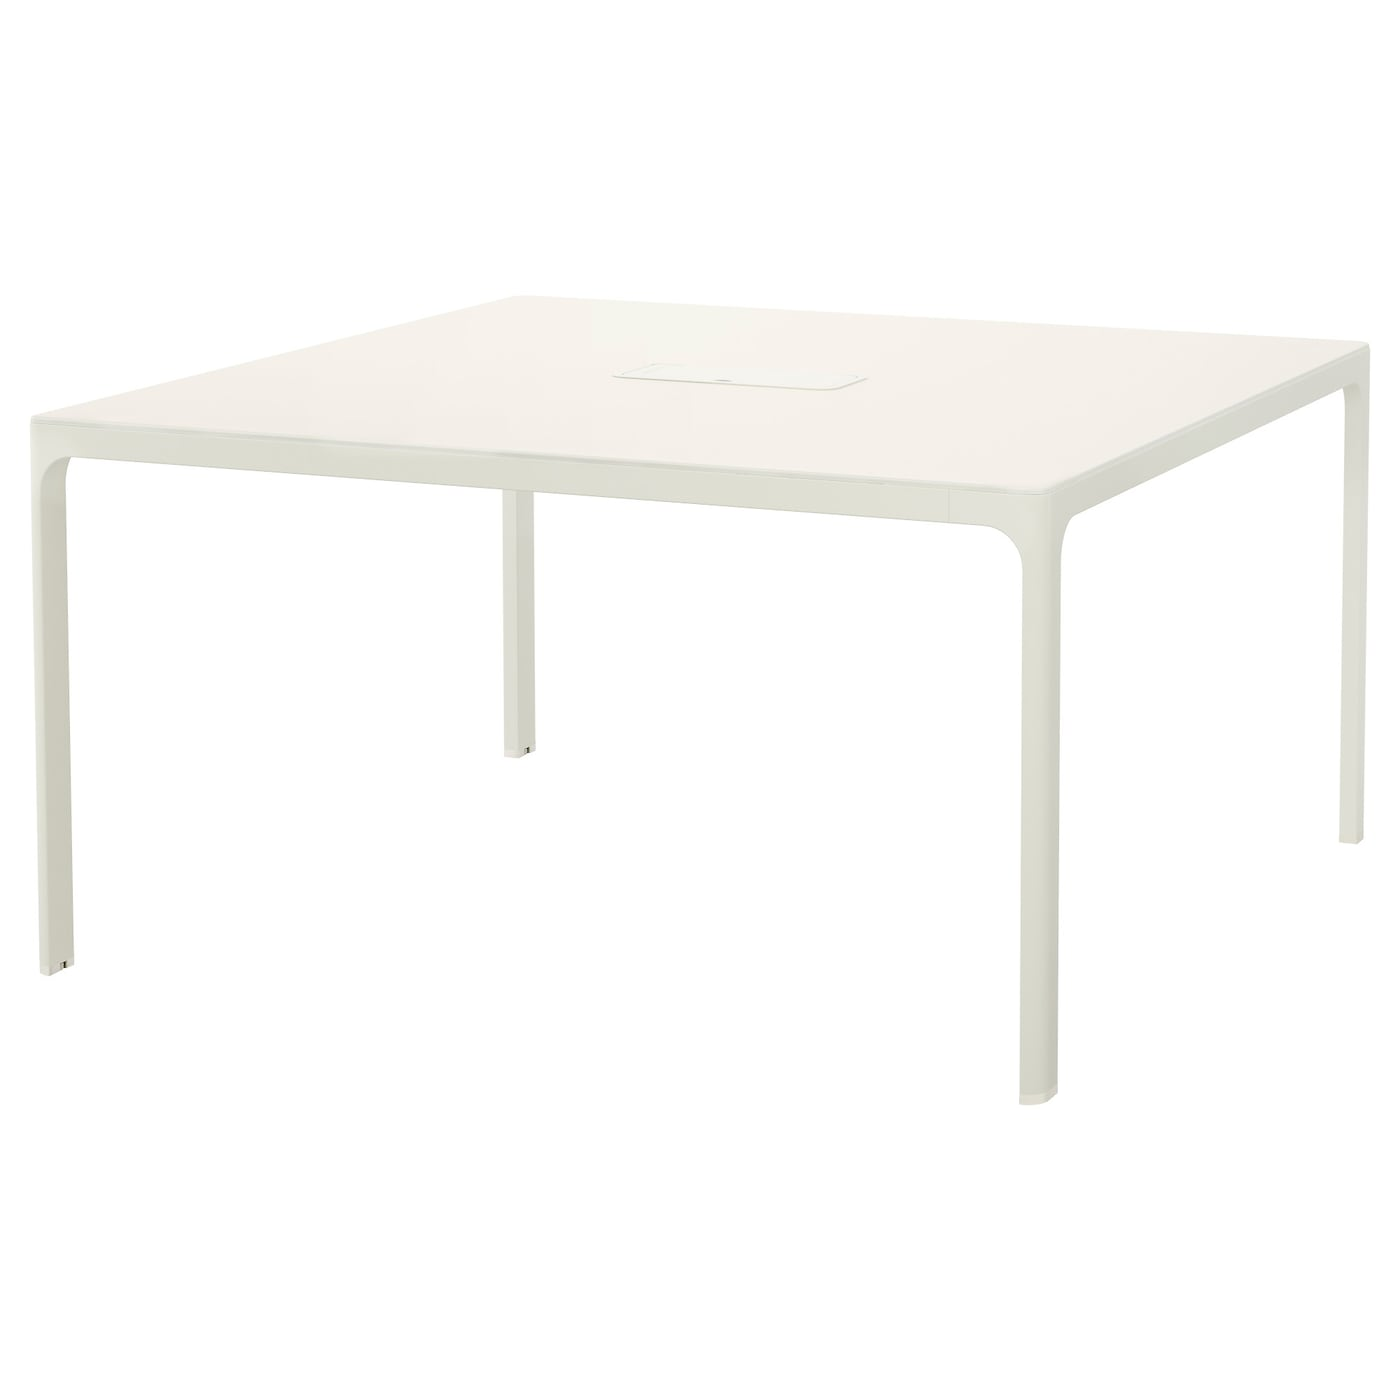 IKEA BEKANT frame for table top 10 year guarantee. Read about the terms in the guarantee brochure.